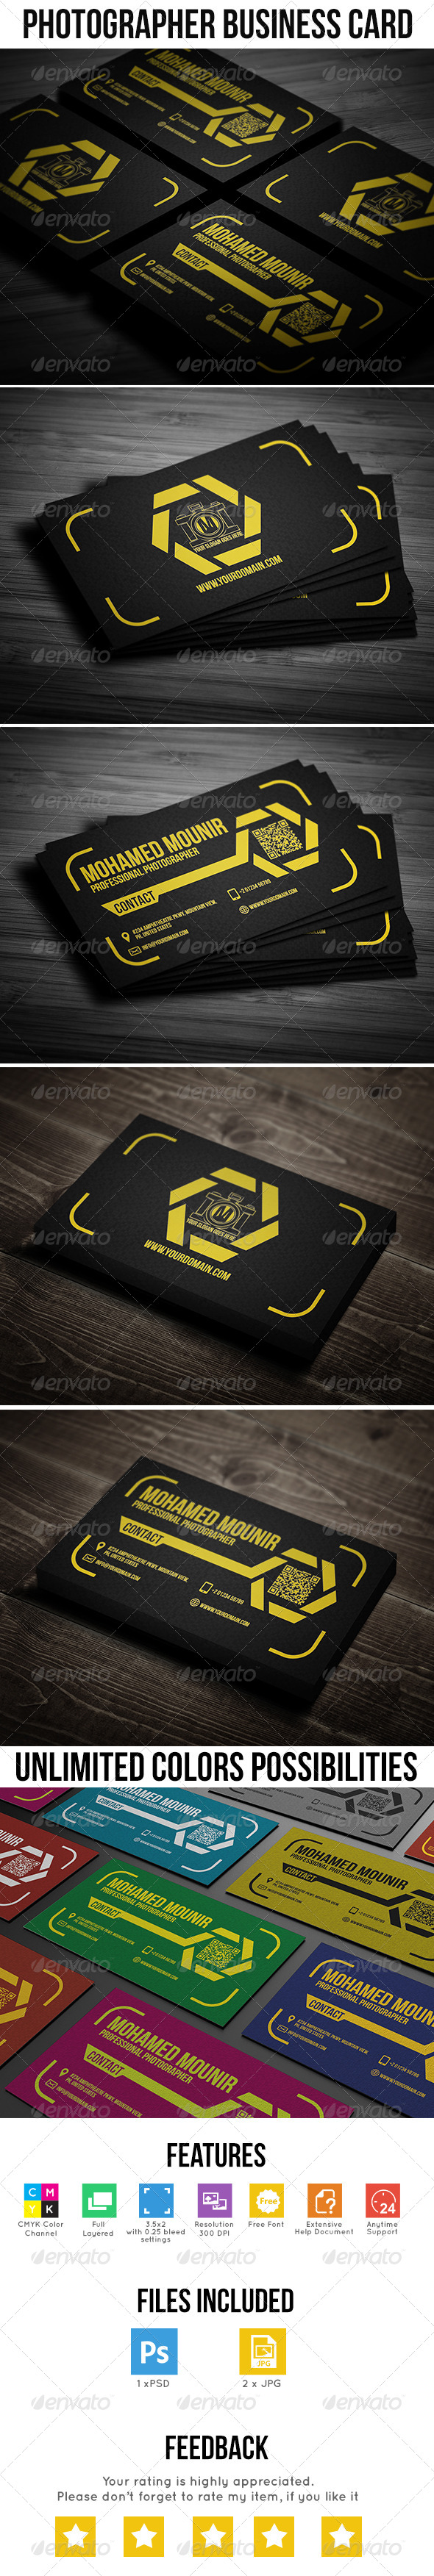 GraphicRiver Photographer Business Card 7774192